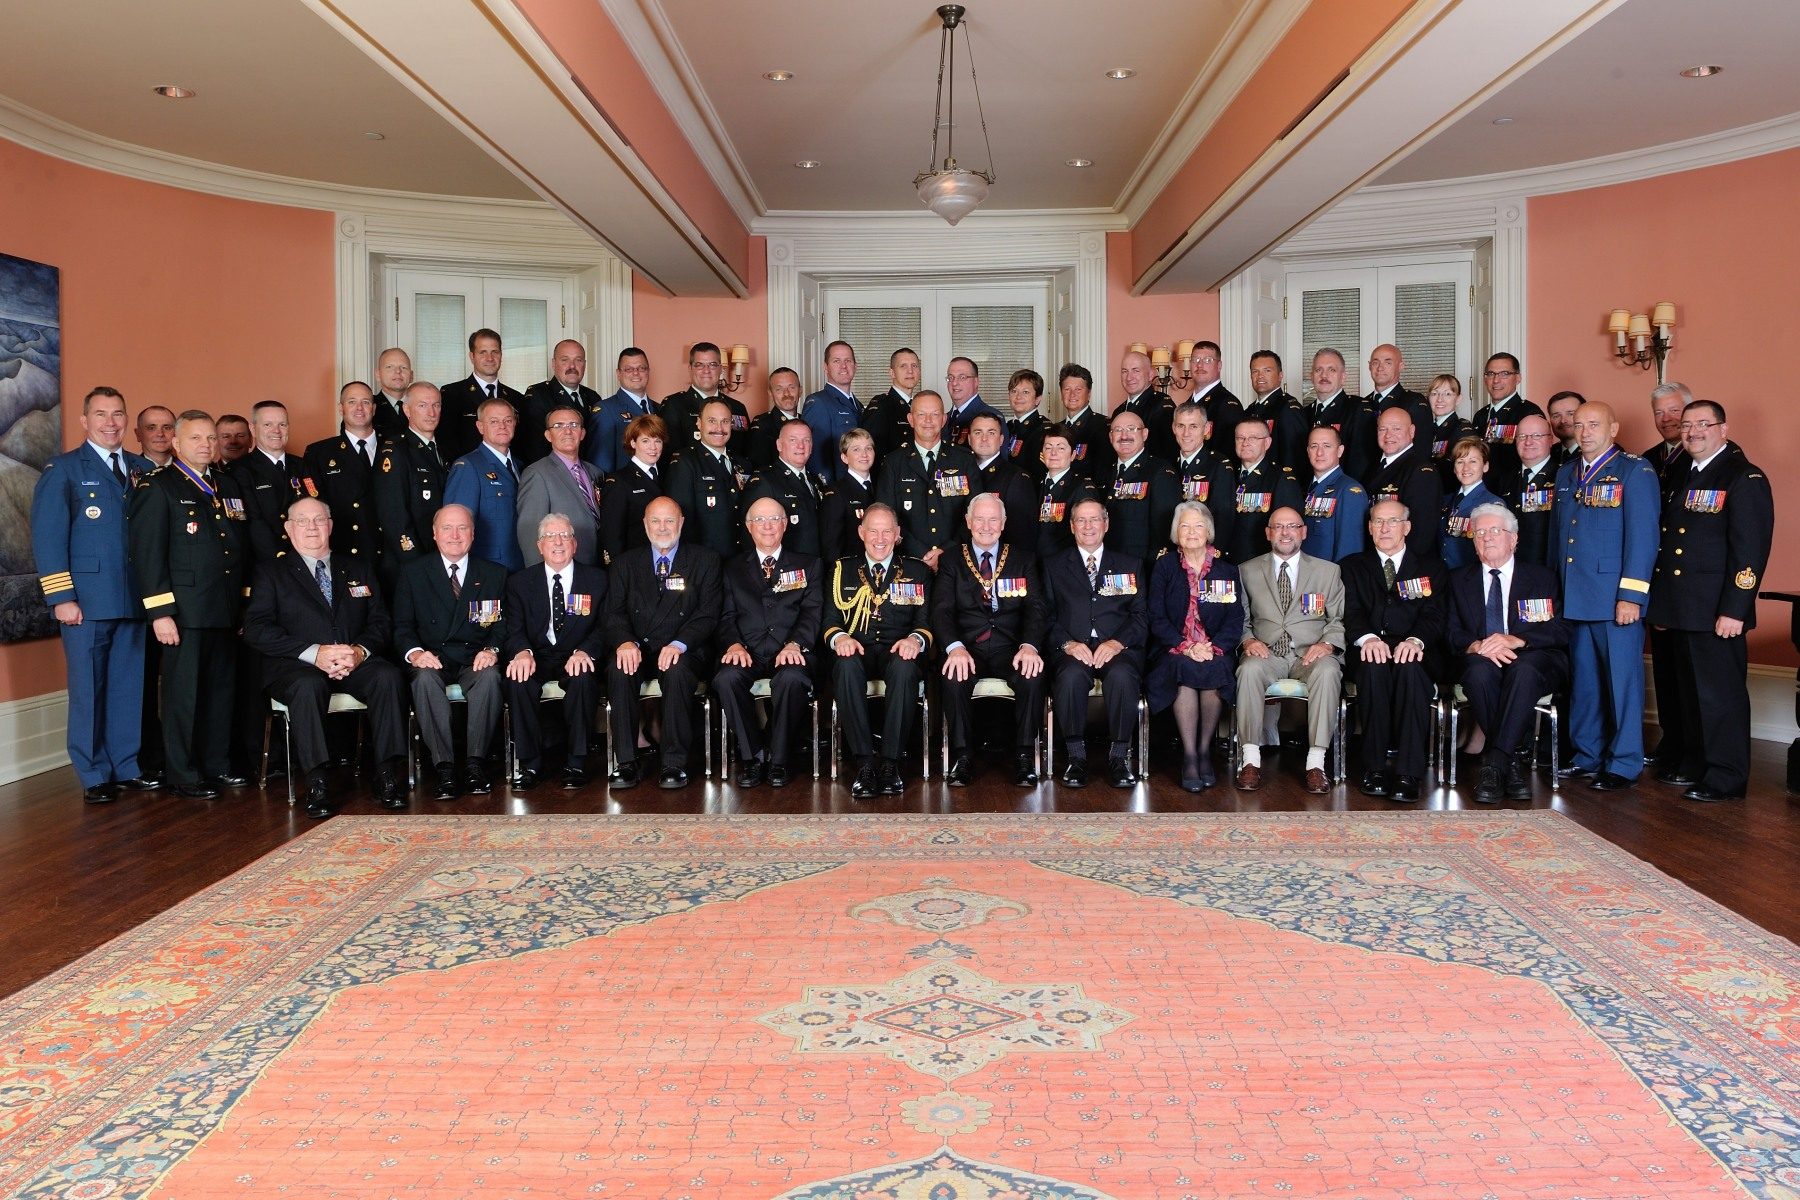 In this picture, the group was joined by eight recipients from the first presentation of the Order of Military Merit in 1972 and by former Chiefs of the Defence Staff, General Maurice Baril, O.C., C.M.M., M.S.M., C.D. (Ret'd) and General Paul D. Manson, O.C., C.M.M., C.D. (Ret'd).